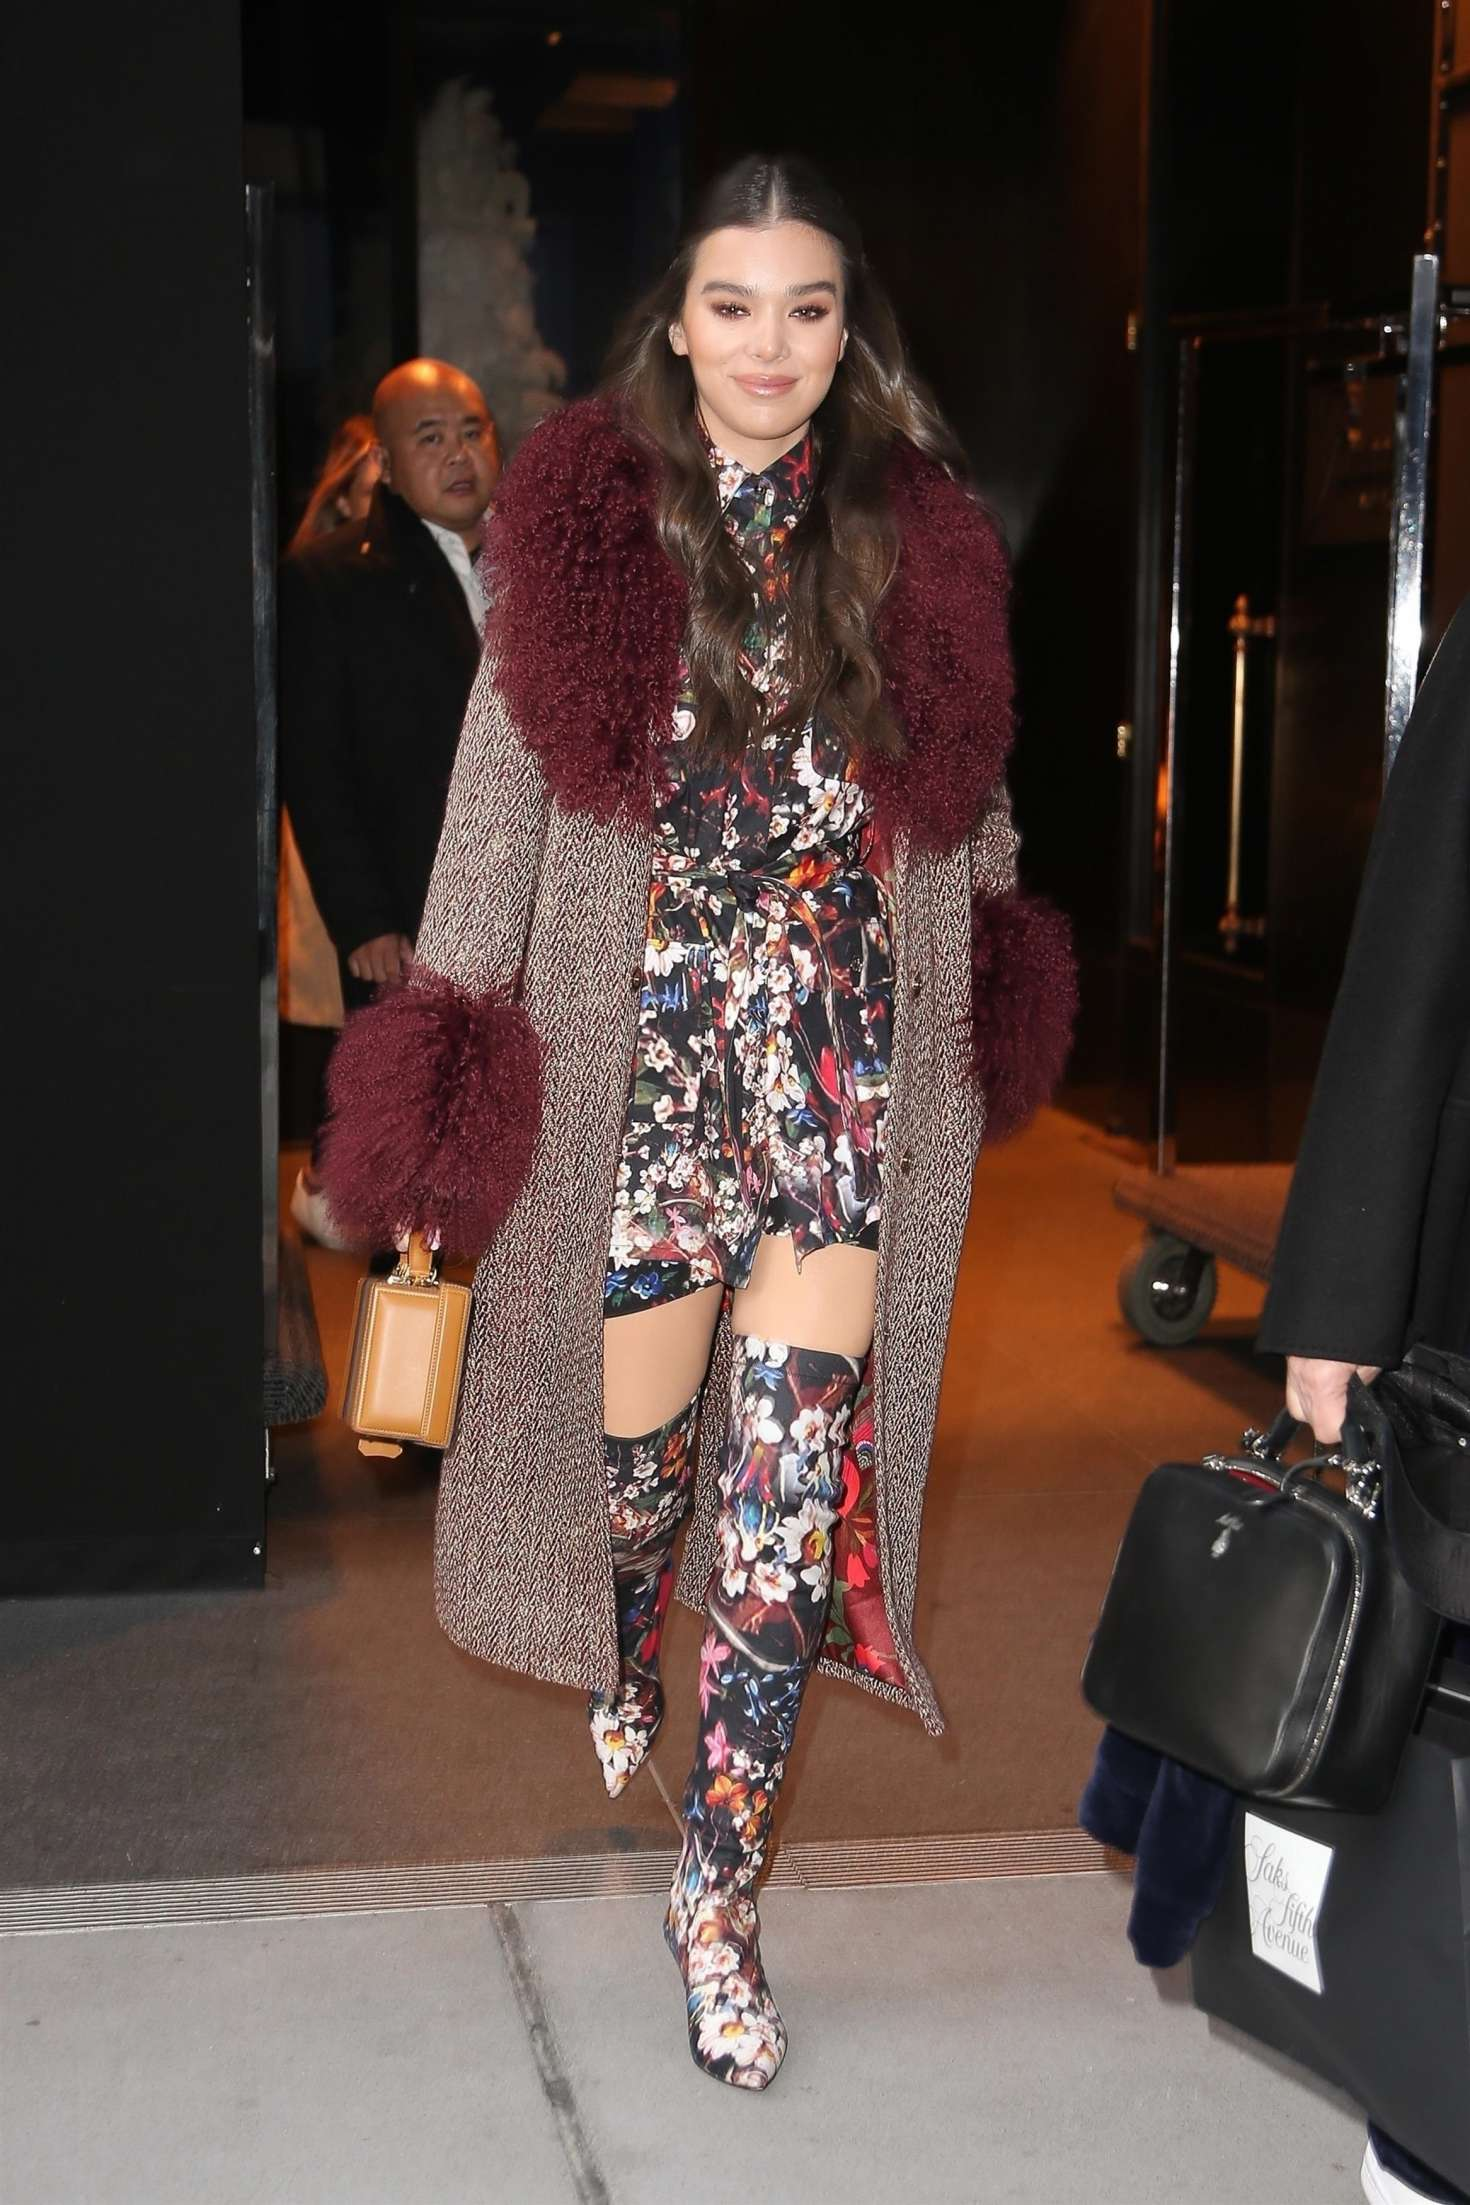 Haille Steinfeld 2018 : Haille Steinfeld in Floral Print Outfit -01